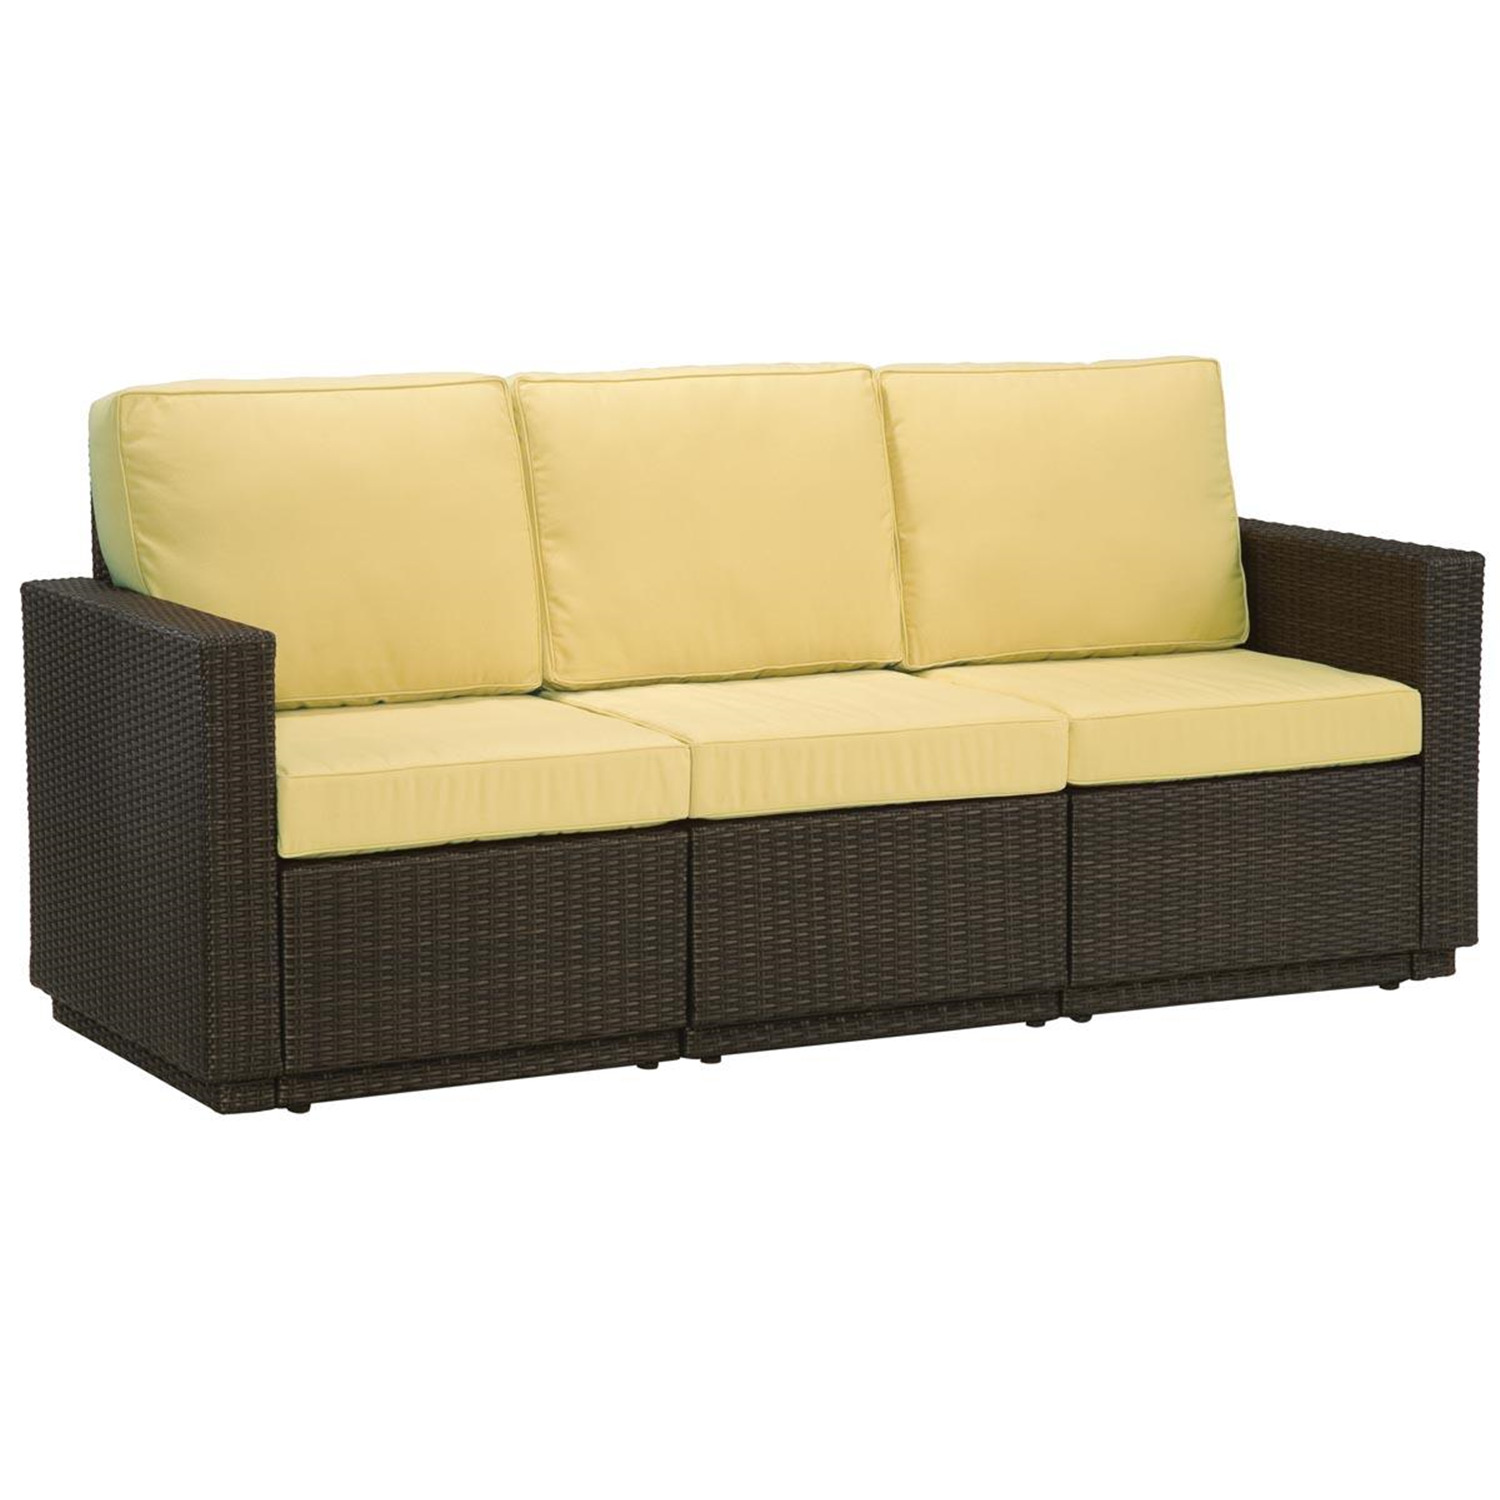 different types of sofa seats pet friendly slipcovers for sofas riviera three seat 2133 99 ojcommerce